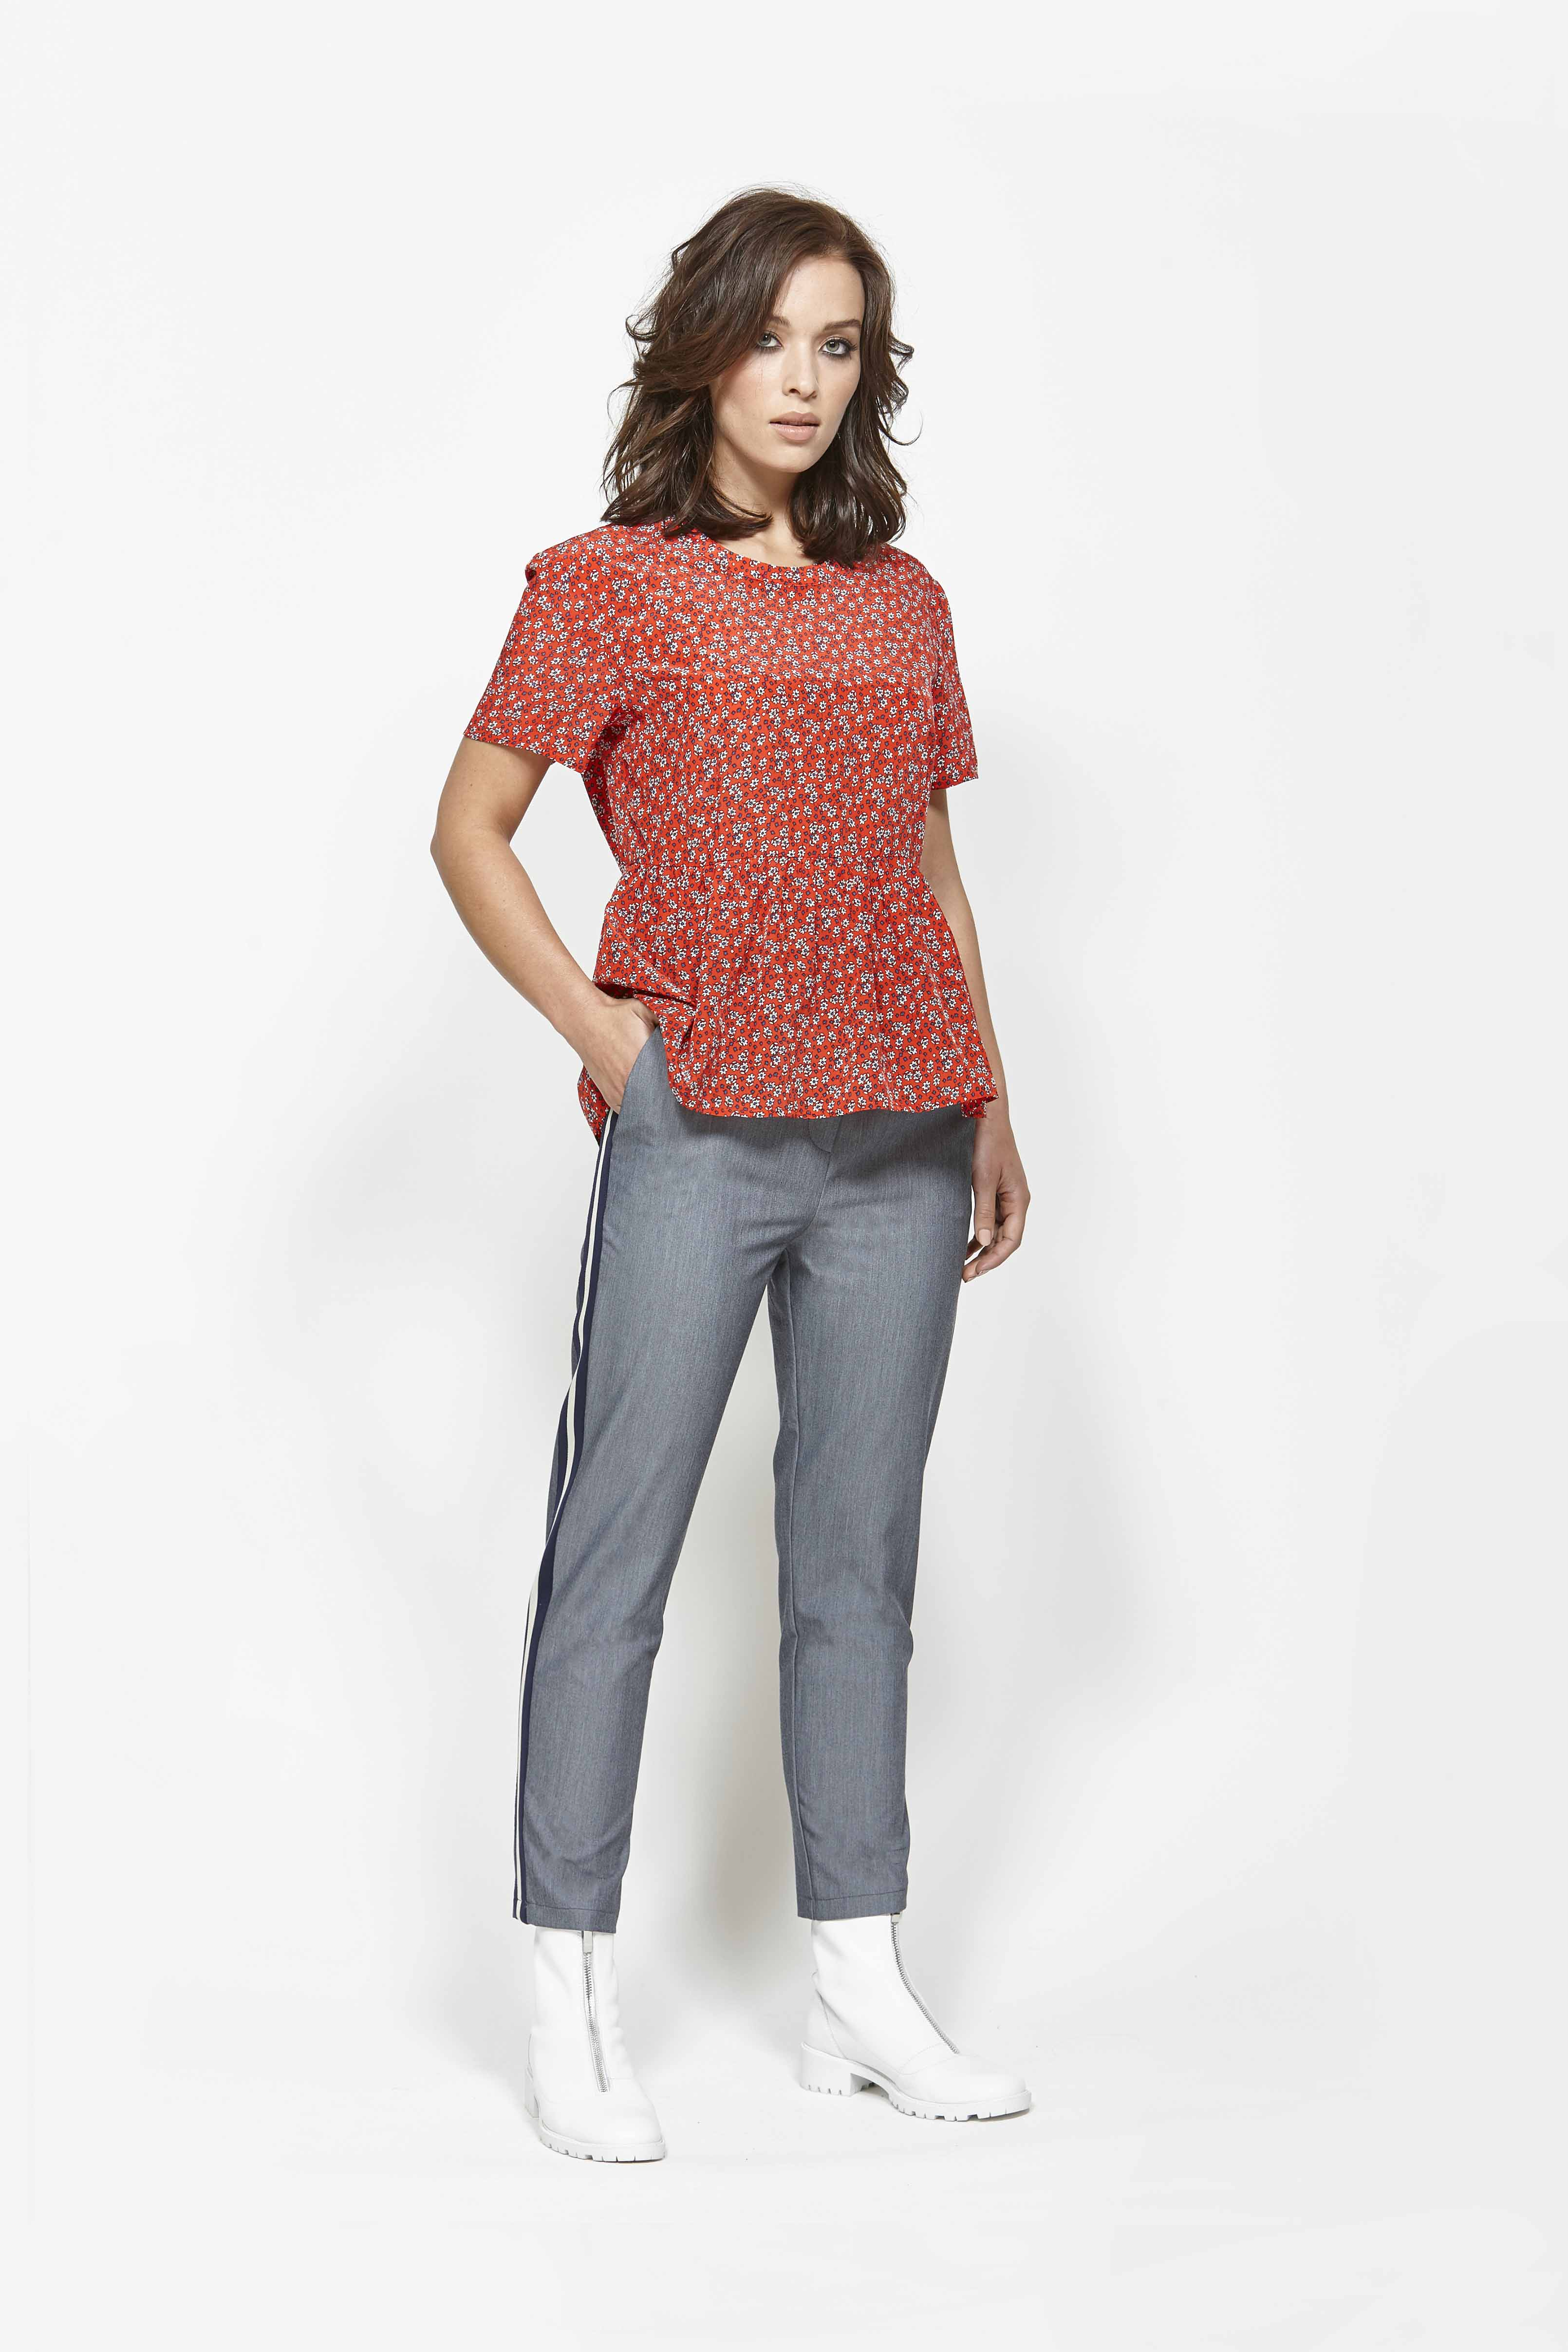 LEO+BE LB1362 Structure Top, RRP$135.00 & LEO+BE LB1348 Break Pant, RRP$135.00